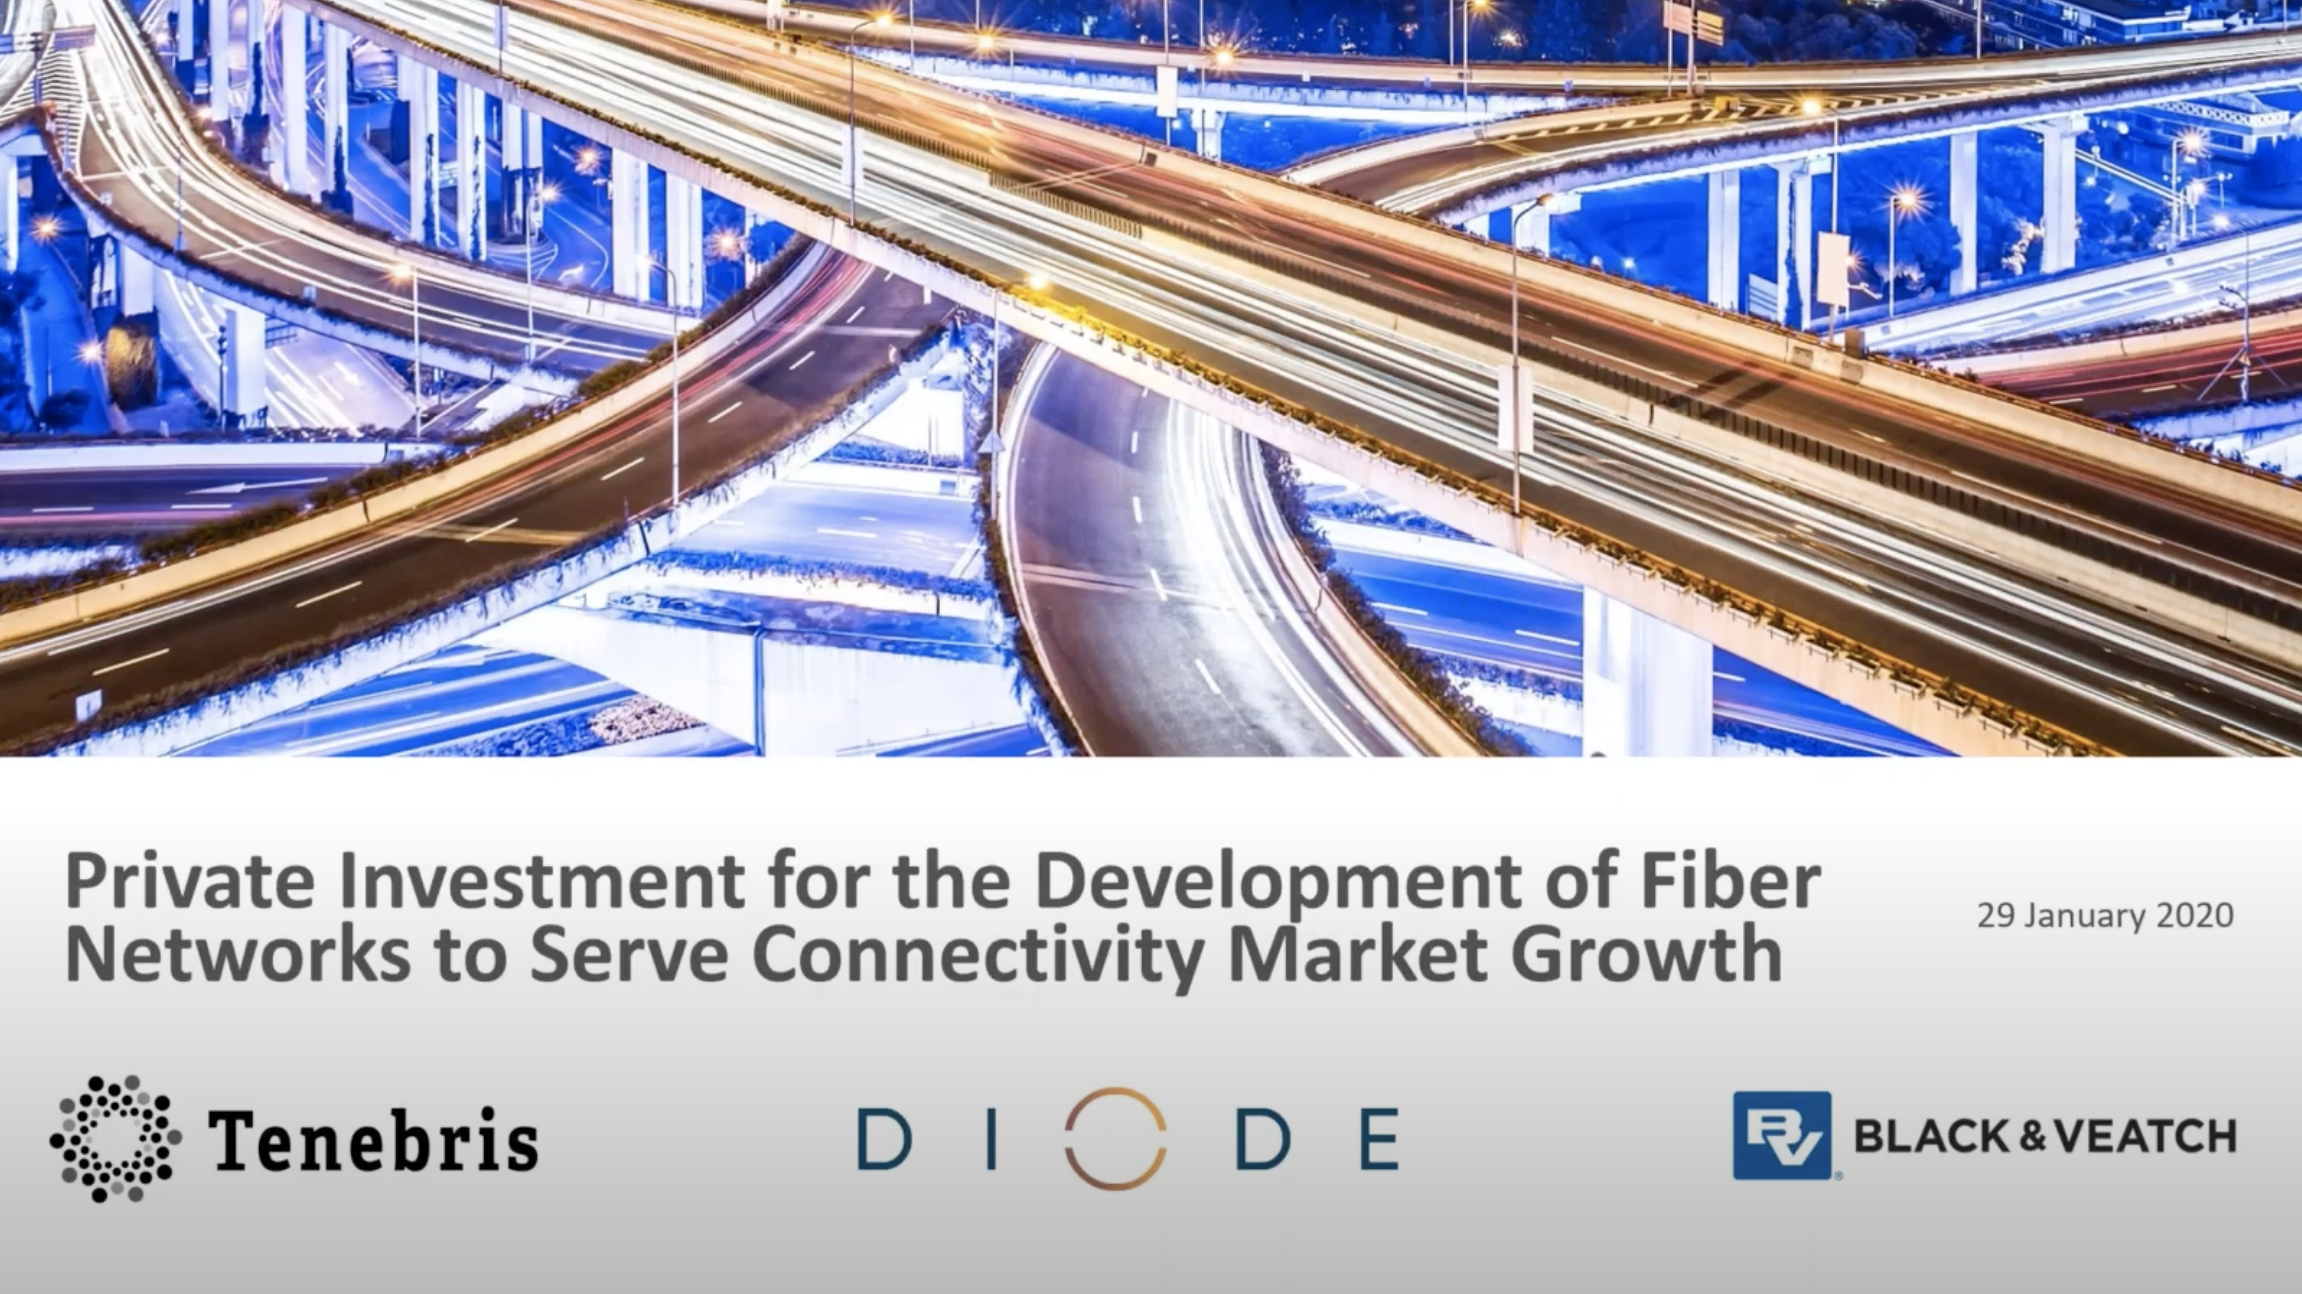 Private Investment for the Development of Fiber Networks to Serve Connectivity Market Growth